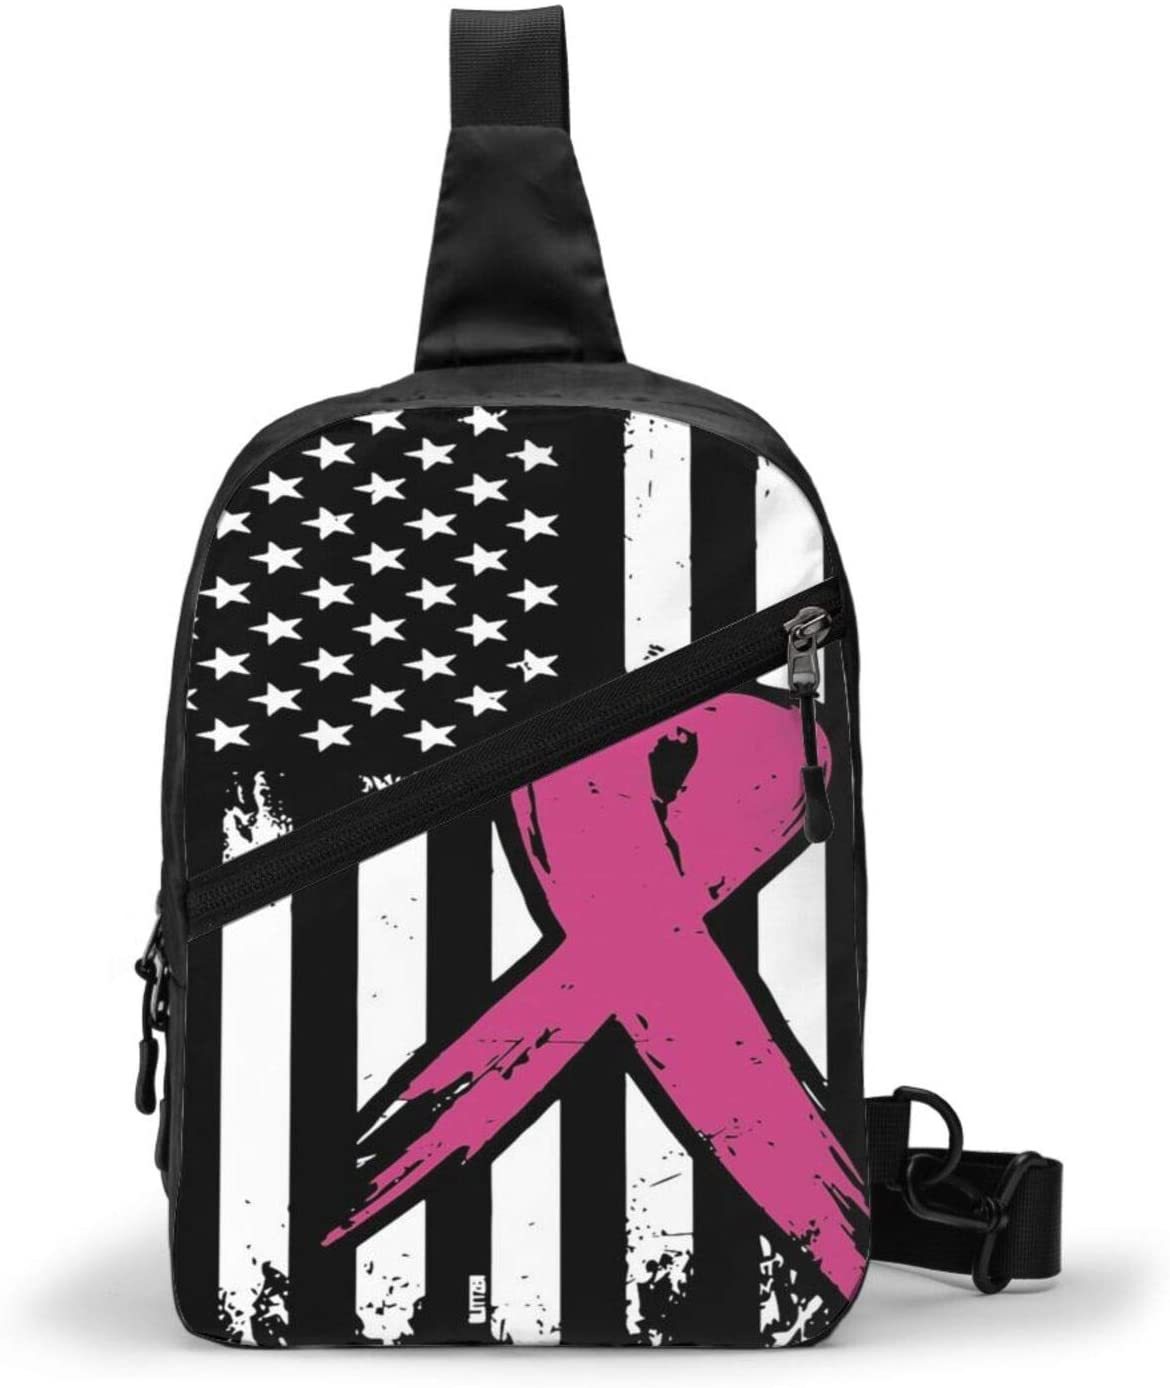 Neddelo Breast Cancer Pink Ribbon USA American Flag Crossbody Bag,Portable Chest Bags,Folding Chest Bag, Men's and Women Sling Bag for Travel,Hiking, Cycling,Camping